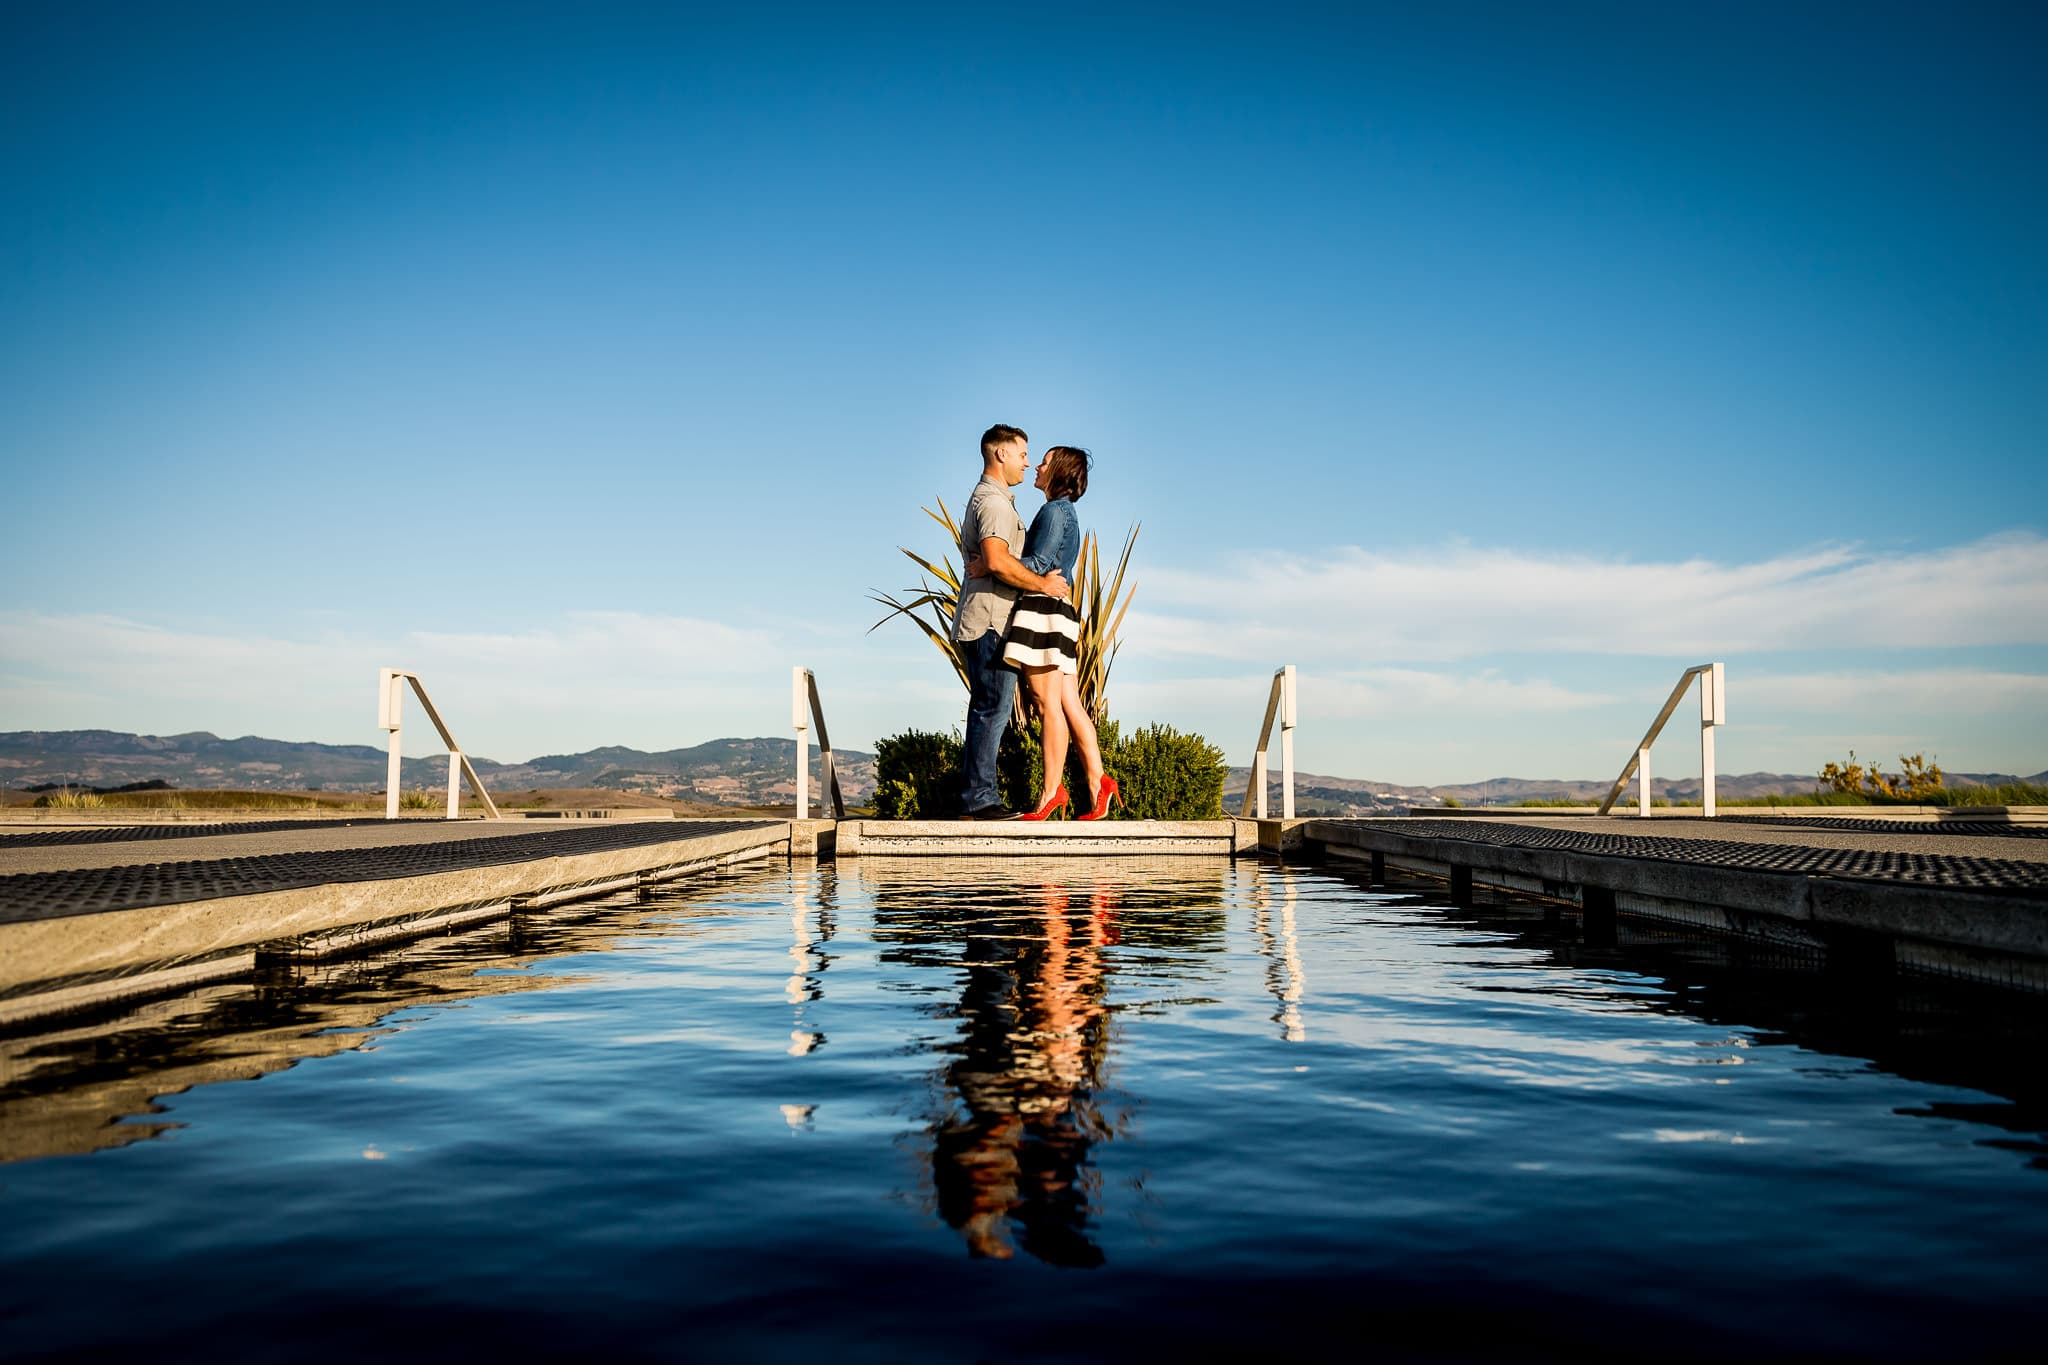 An engaged couple holding each other close with their reflection rippling over the water at Artesa Winery in Napa Valley